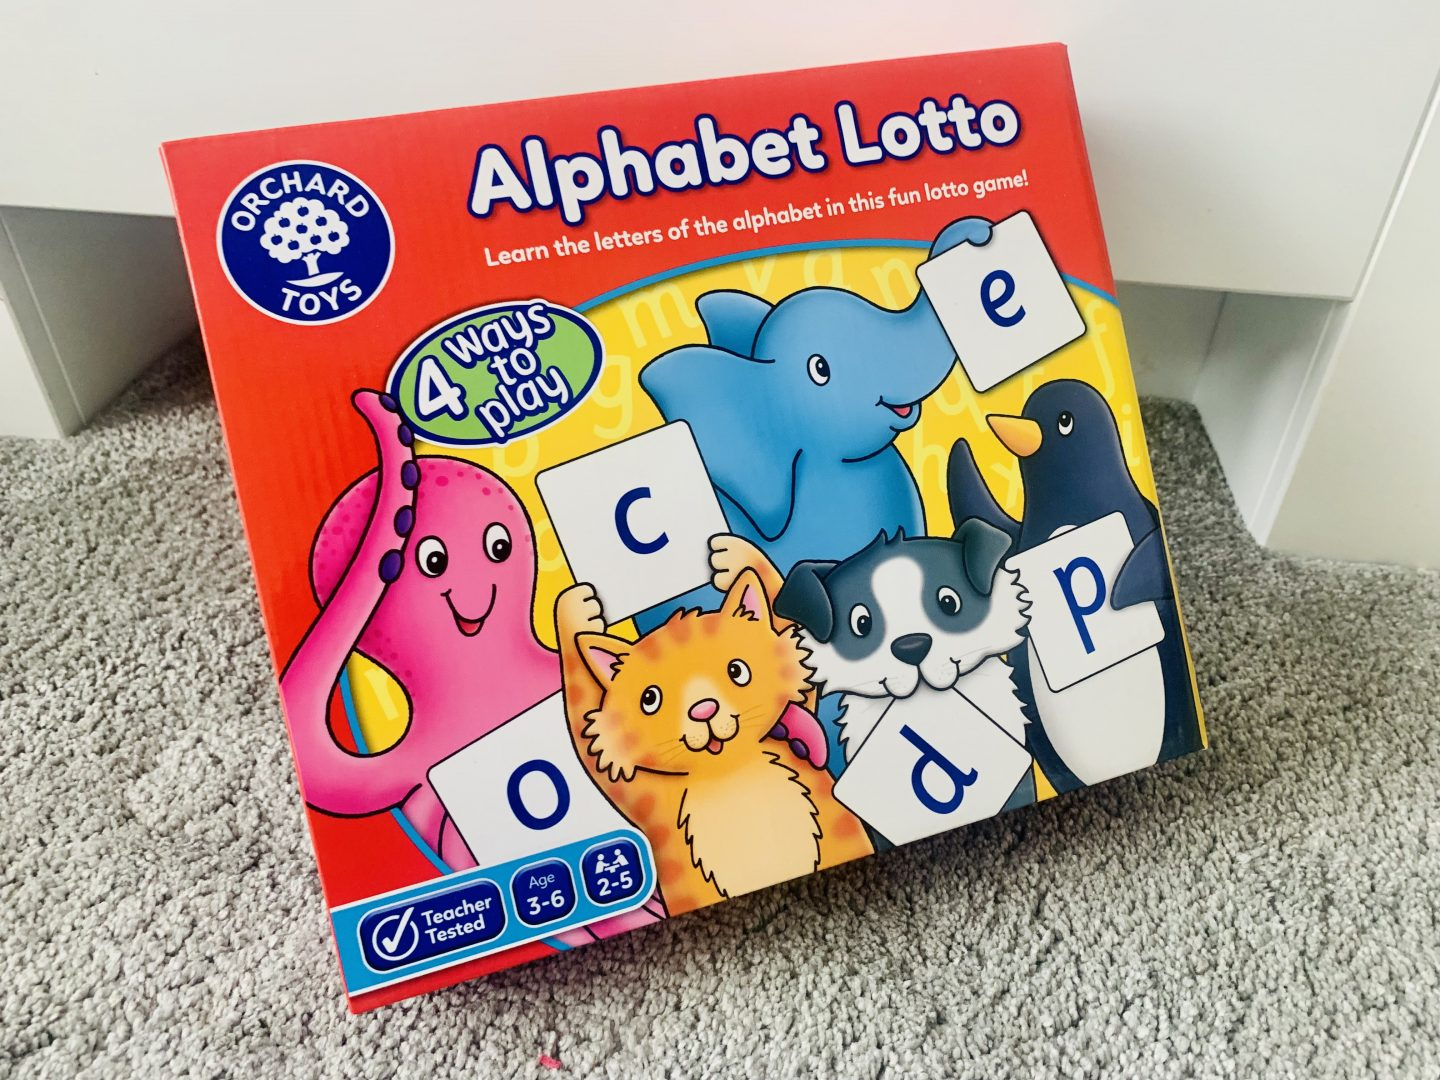 Alphebet lotto Orchard toys competition from Office Statinery